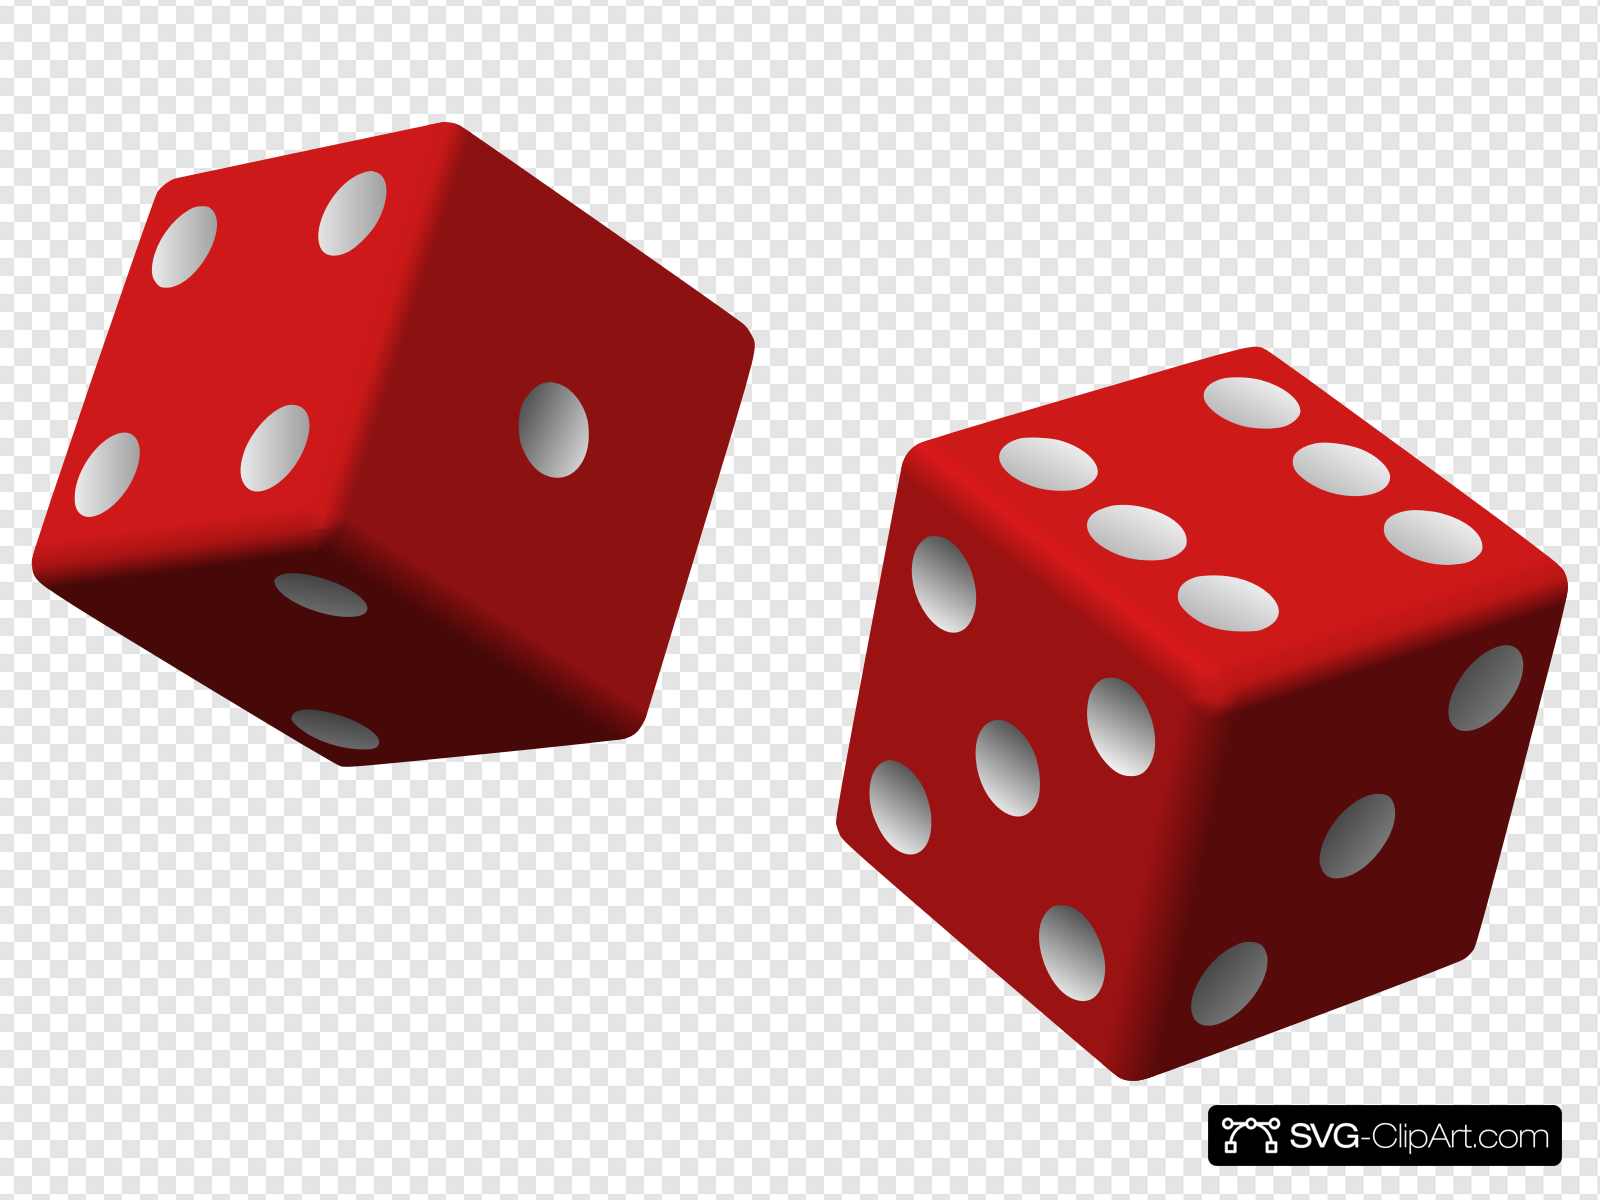 Two Red Dice Clip art, Icon and SVG.